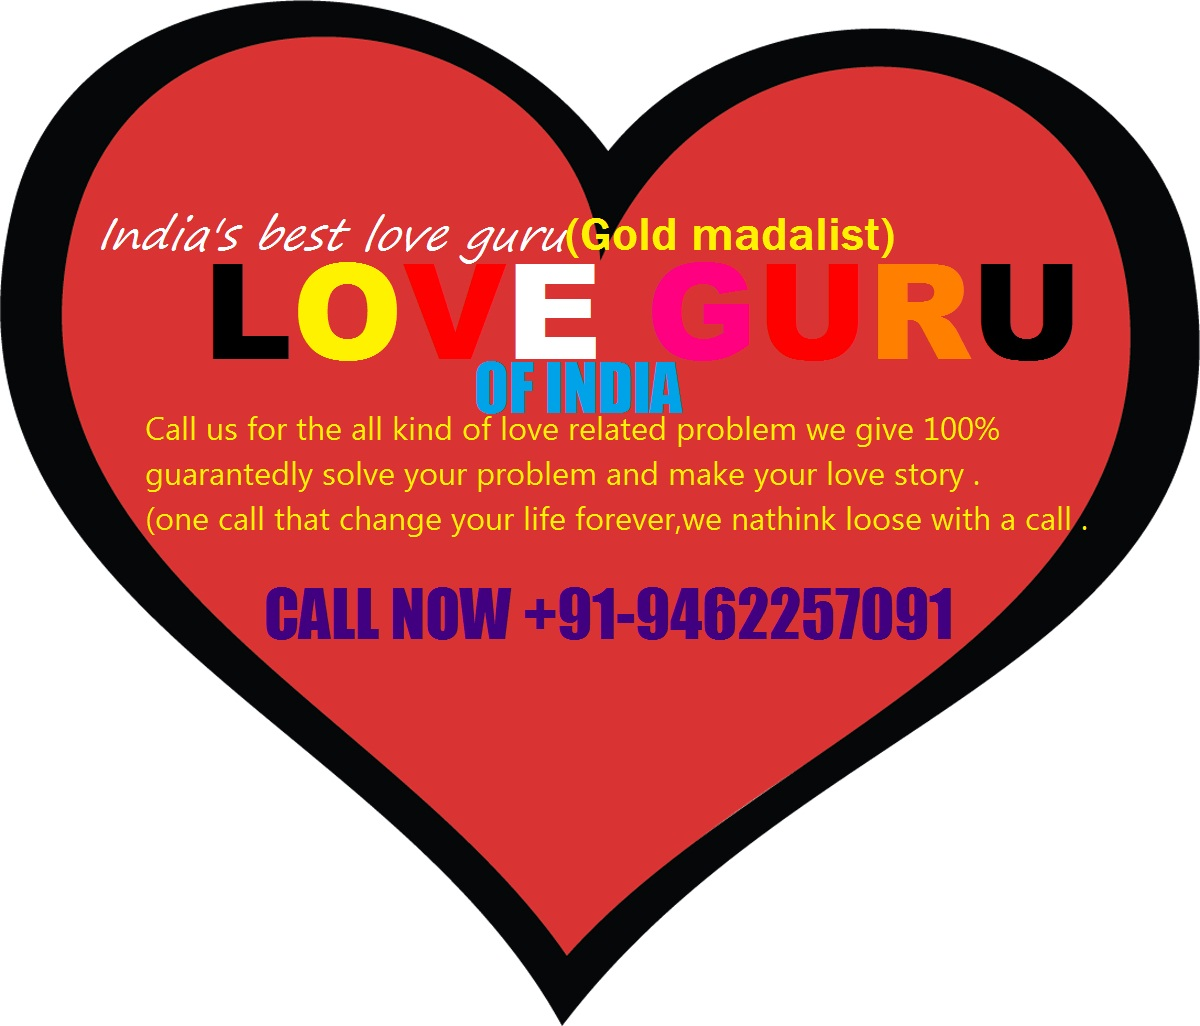 LOVE GURU of india in CHANDIGARH CALL NOW +91-9462257091